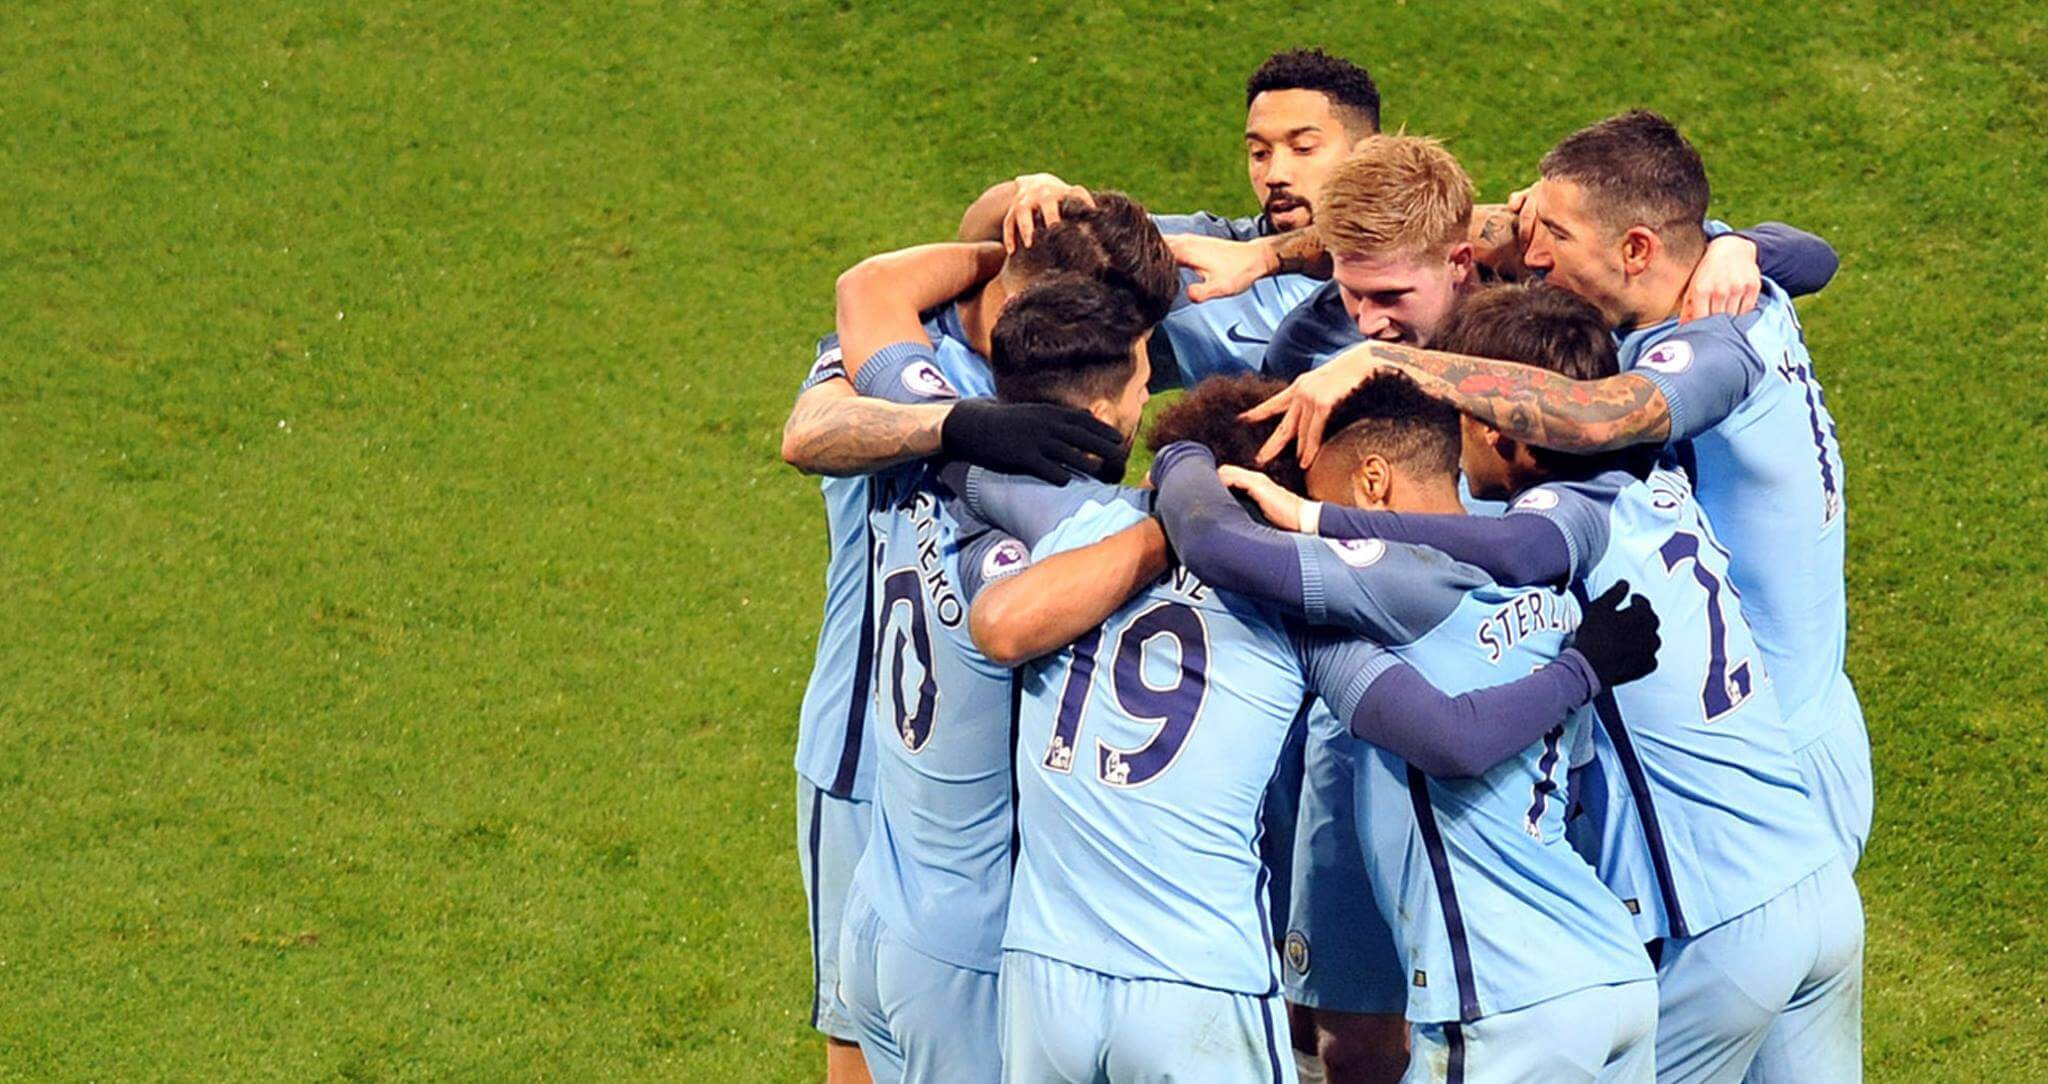 Manchester City: Pep's Men Set for Title Push